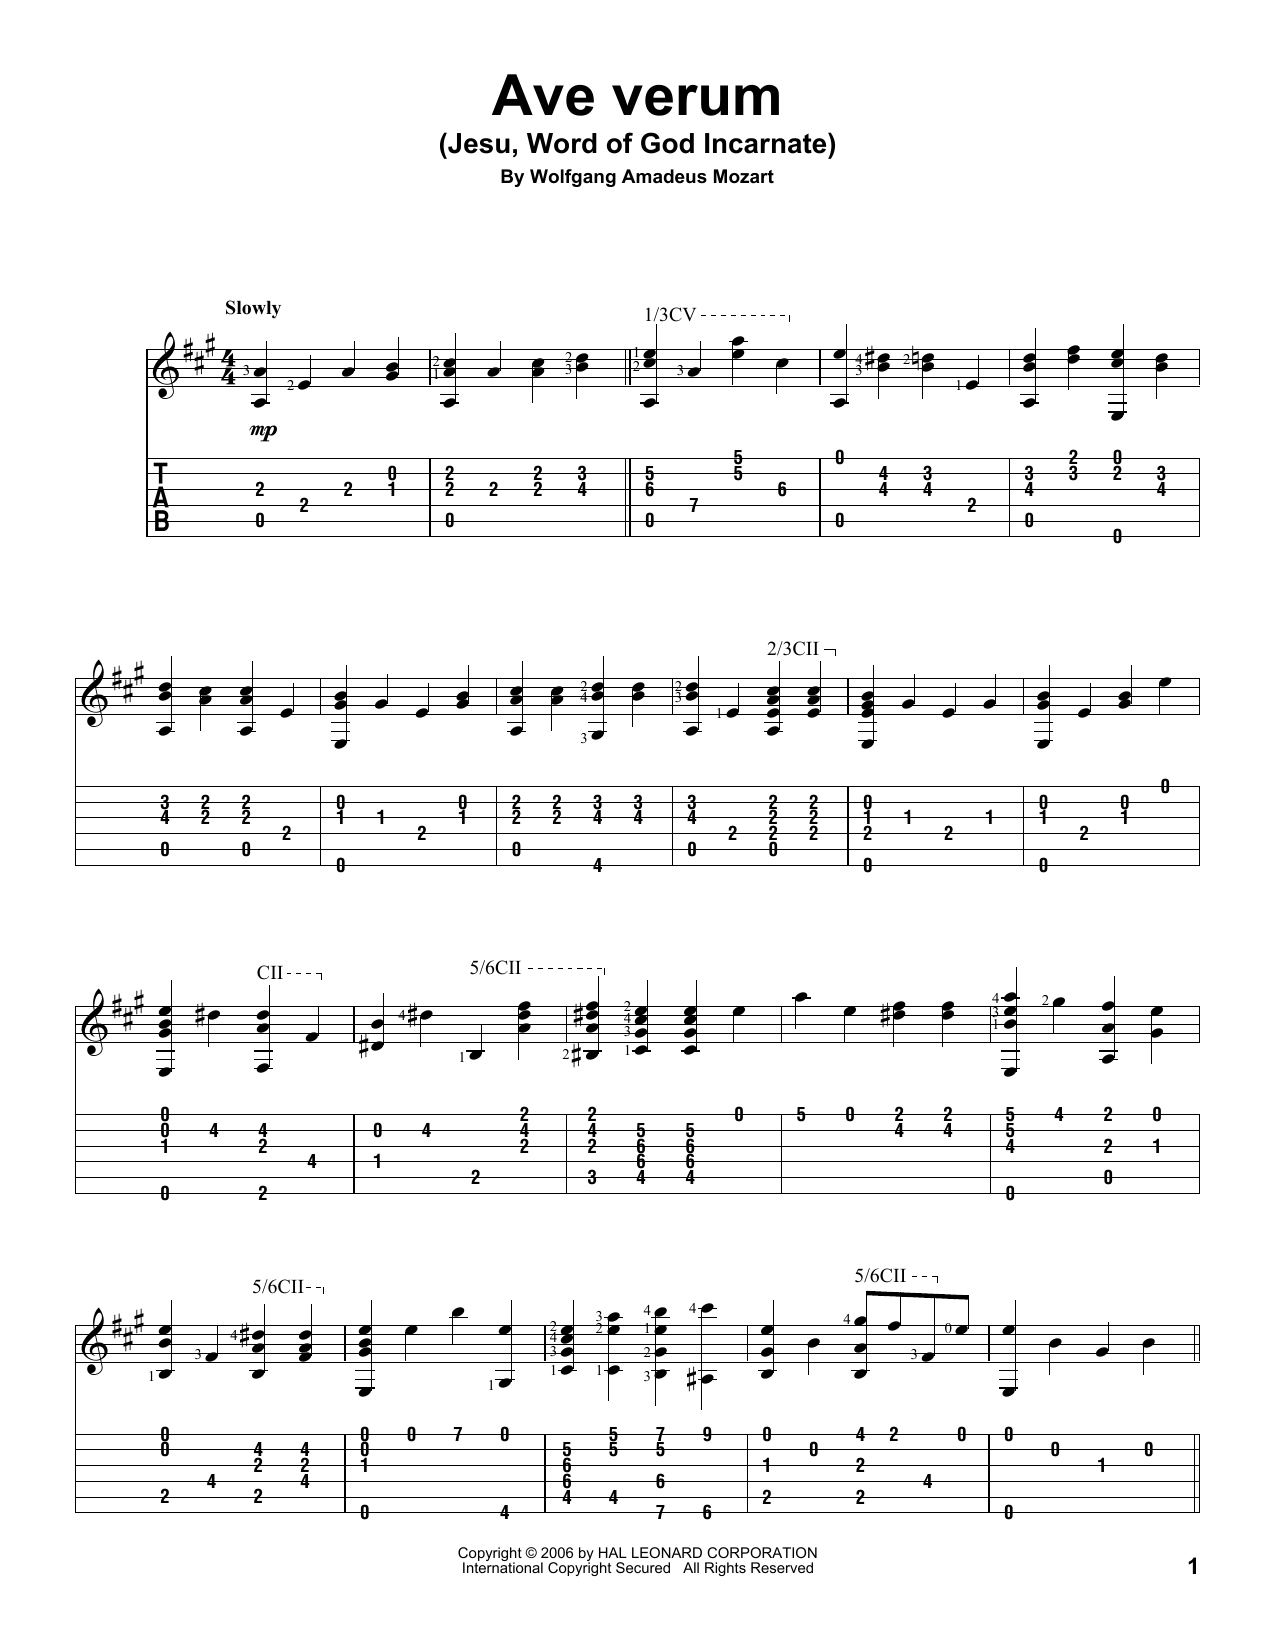 Ave Verum (Jesu, Word of God Incarnate) Sheet Music